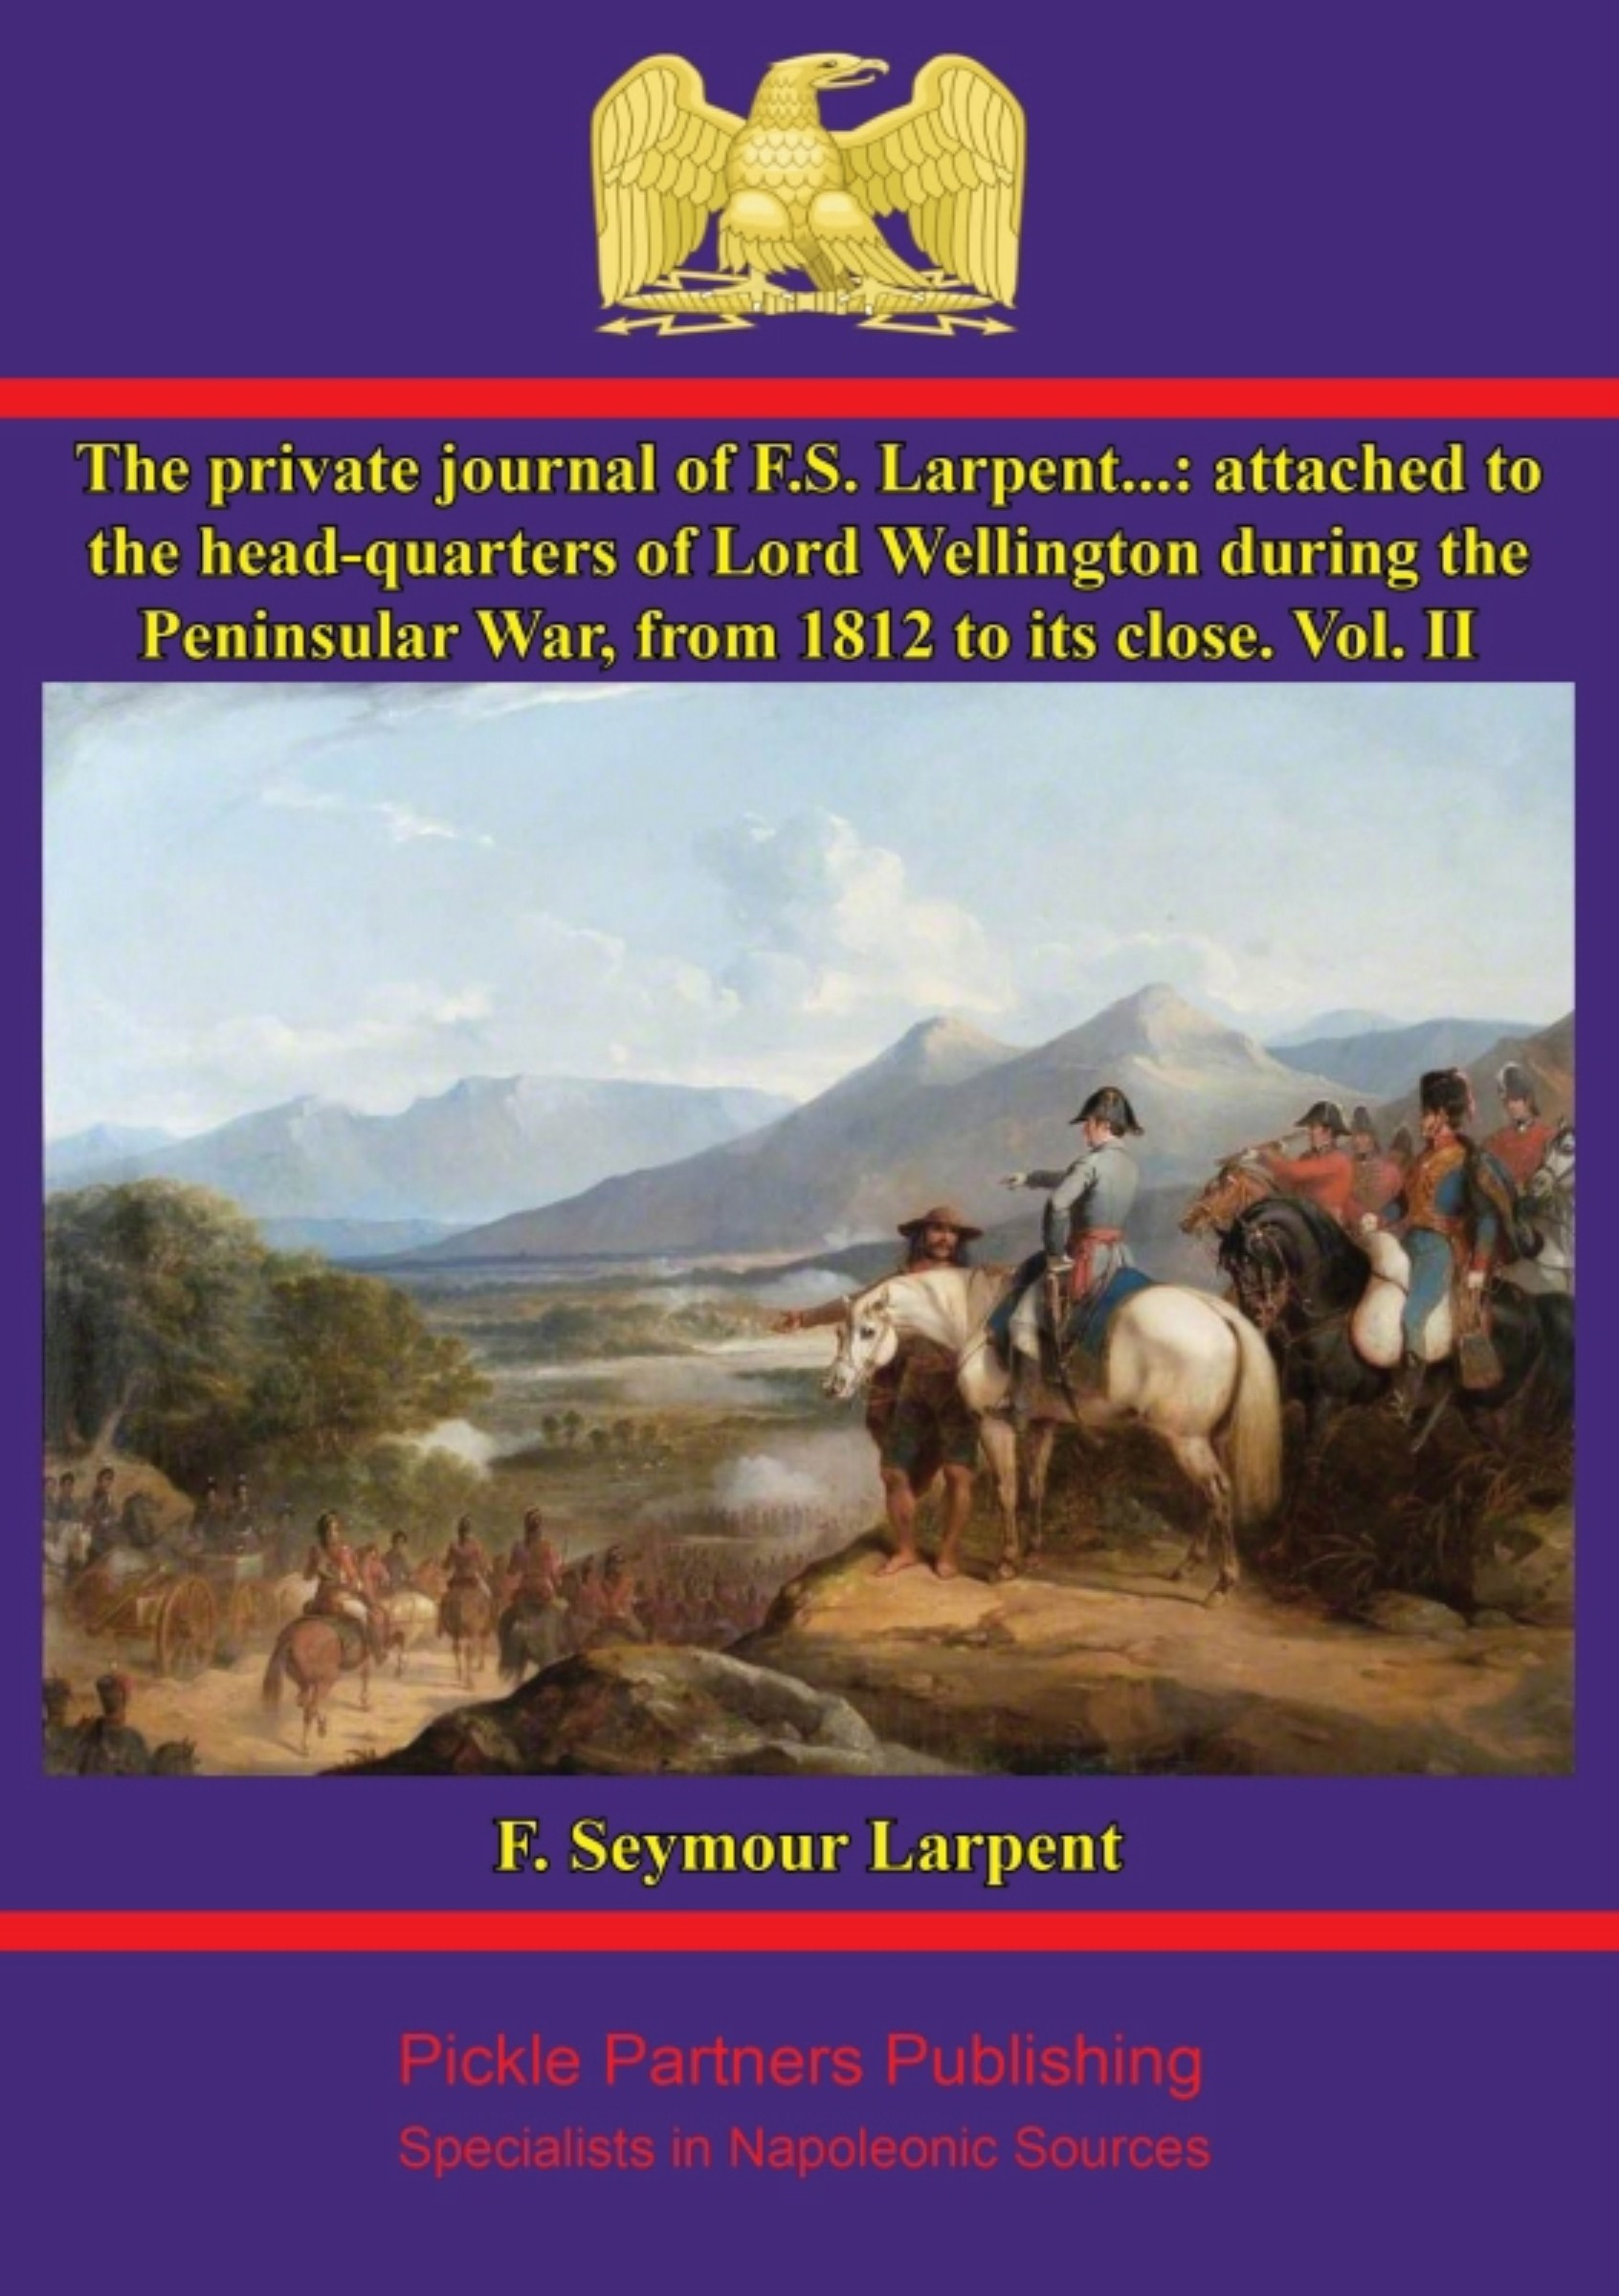 The private journal of F.S. Larpent - Vol. II